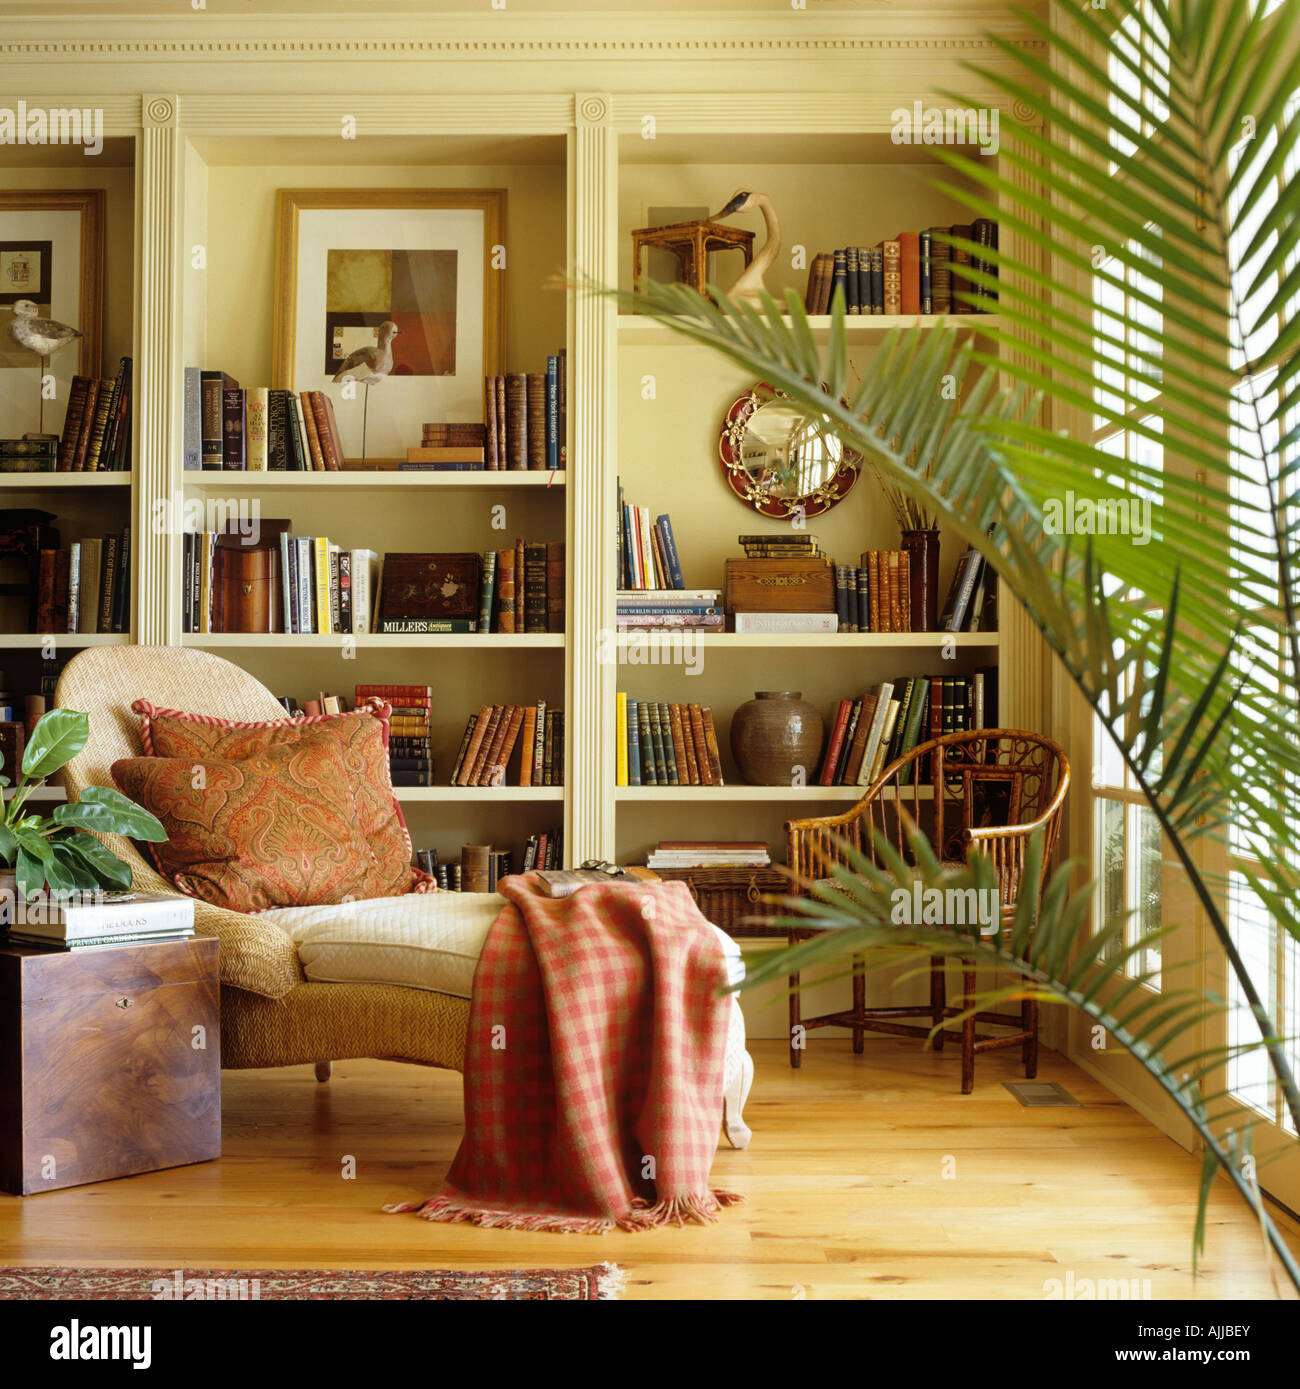 in s new on livings best ideas living orange endearing room with daybed sofa fu inspiring meliving decorating design